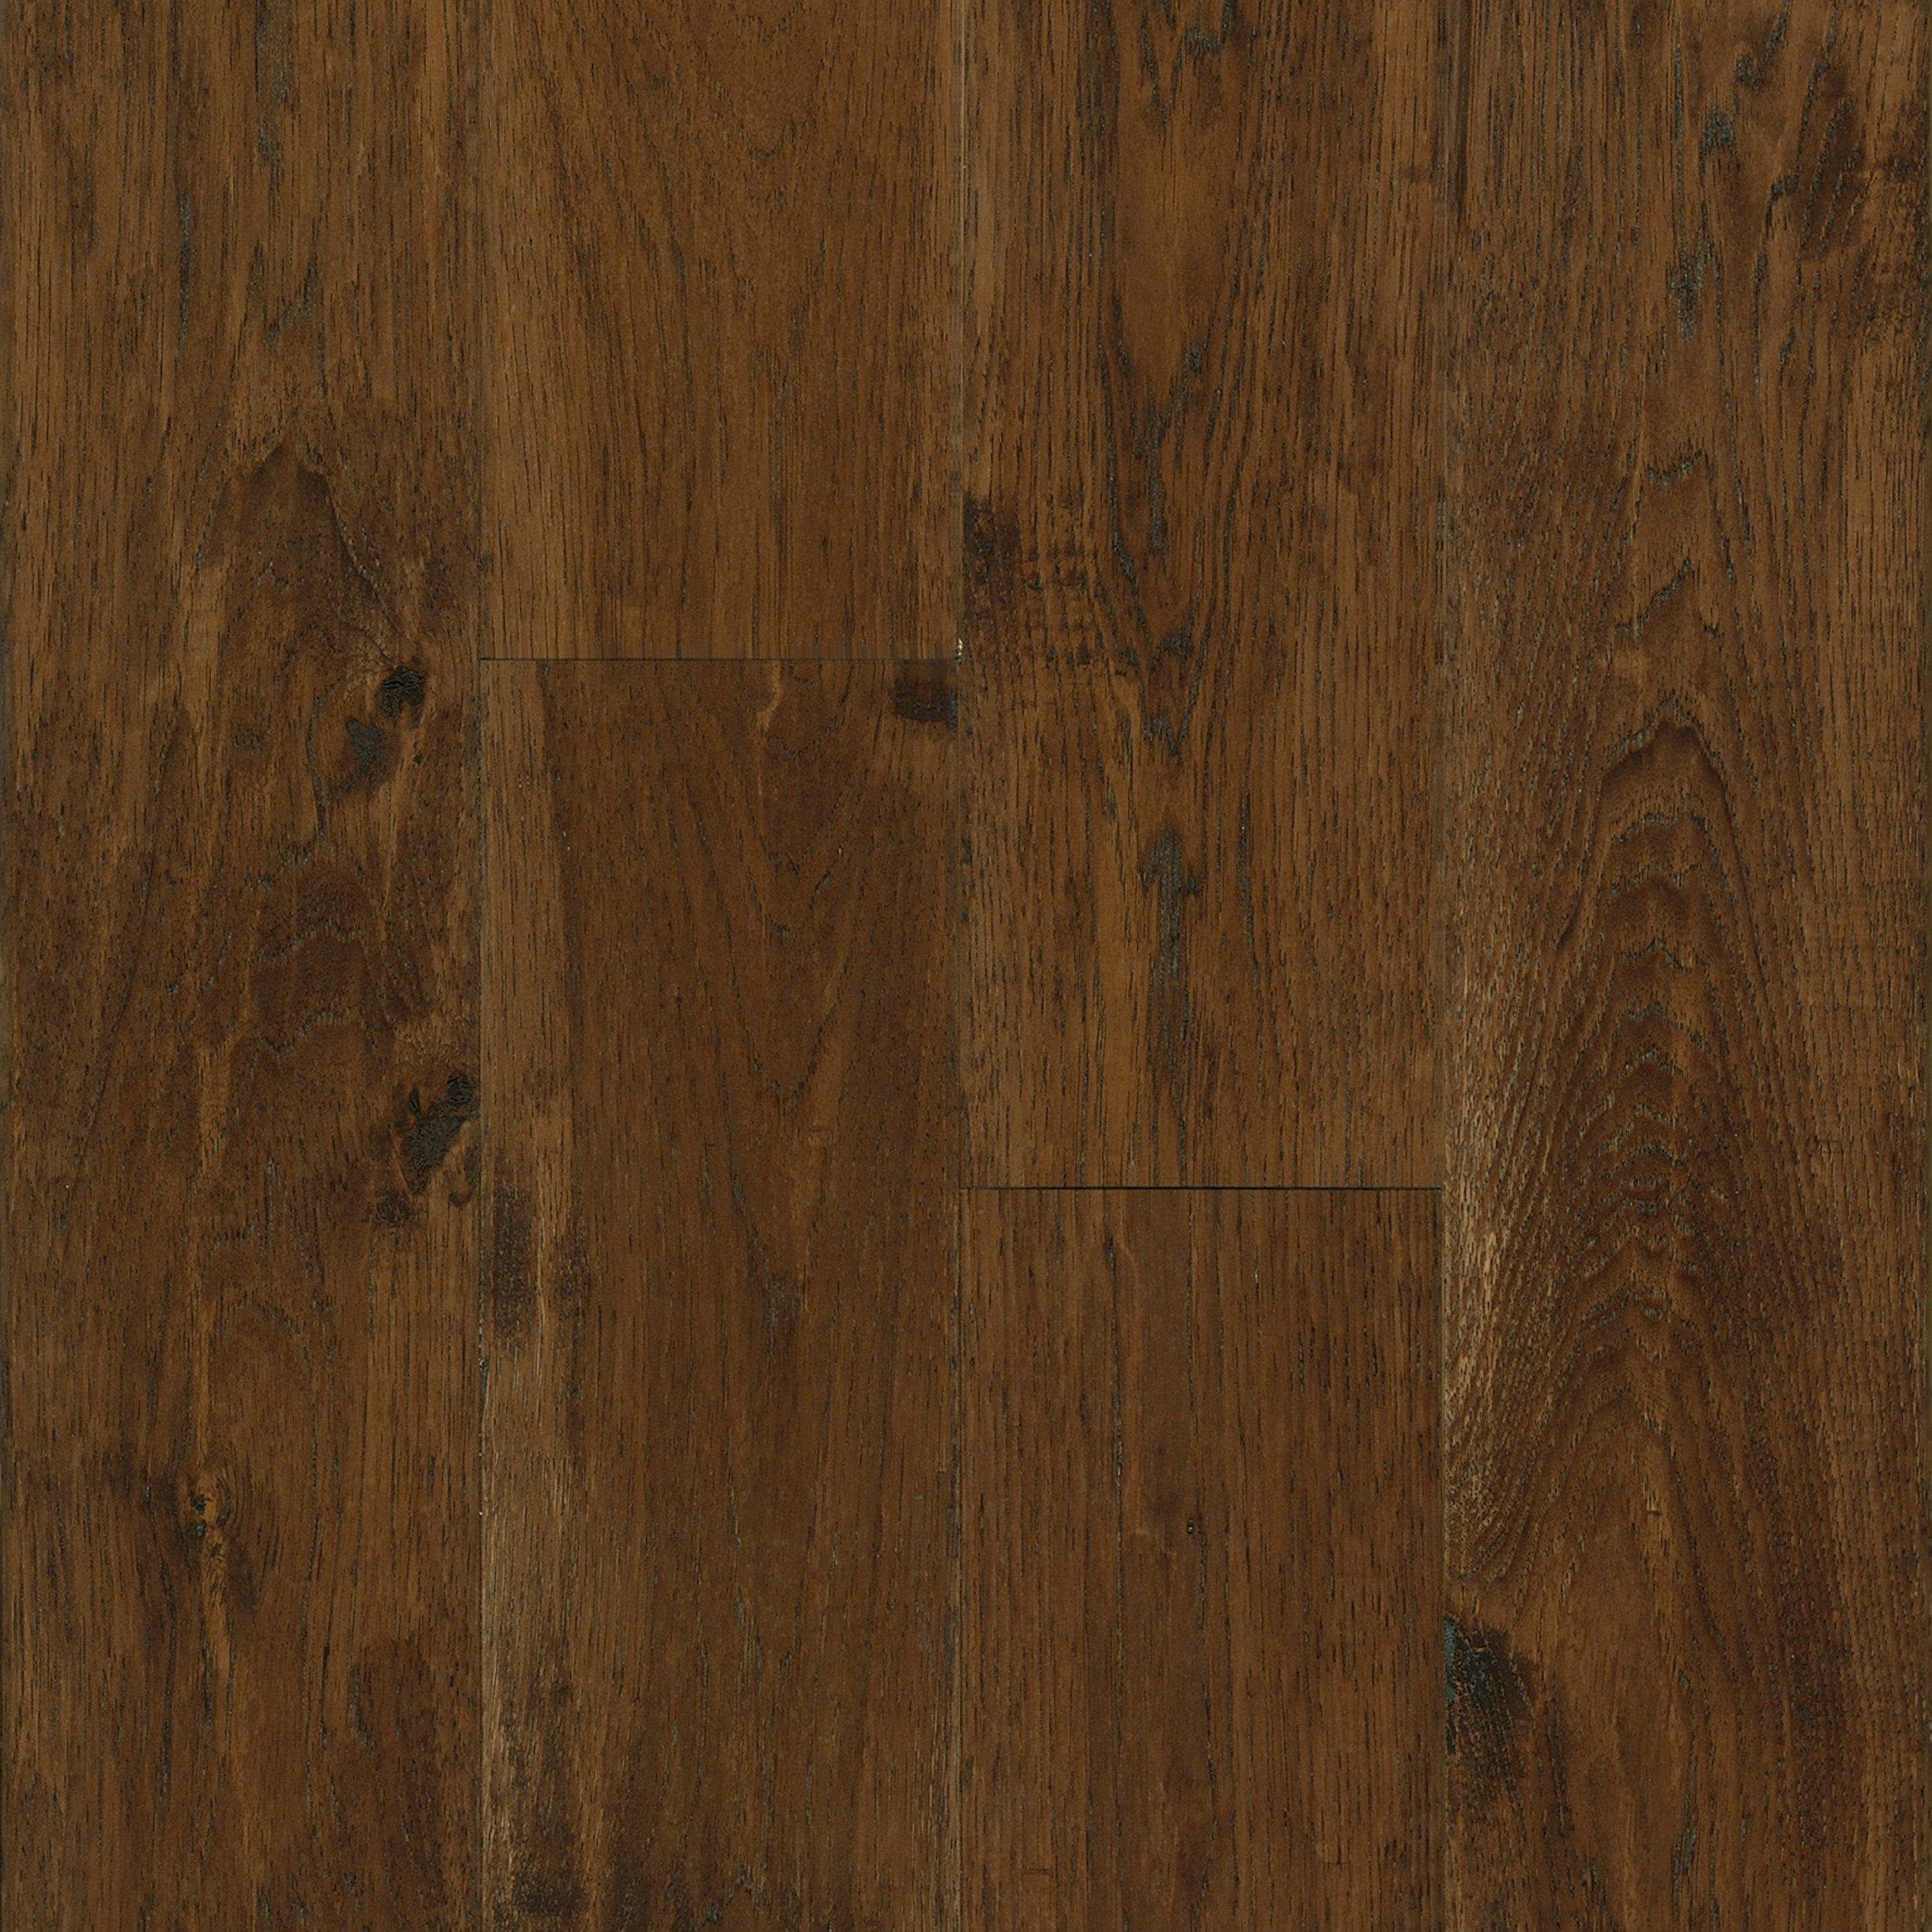 hand hickory flooring bargains austin floor scraped hardwood lights city